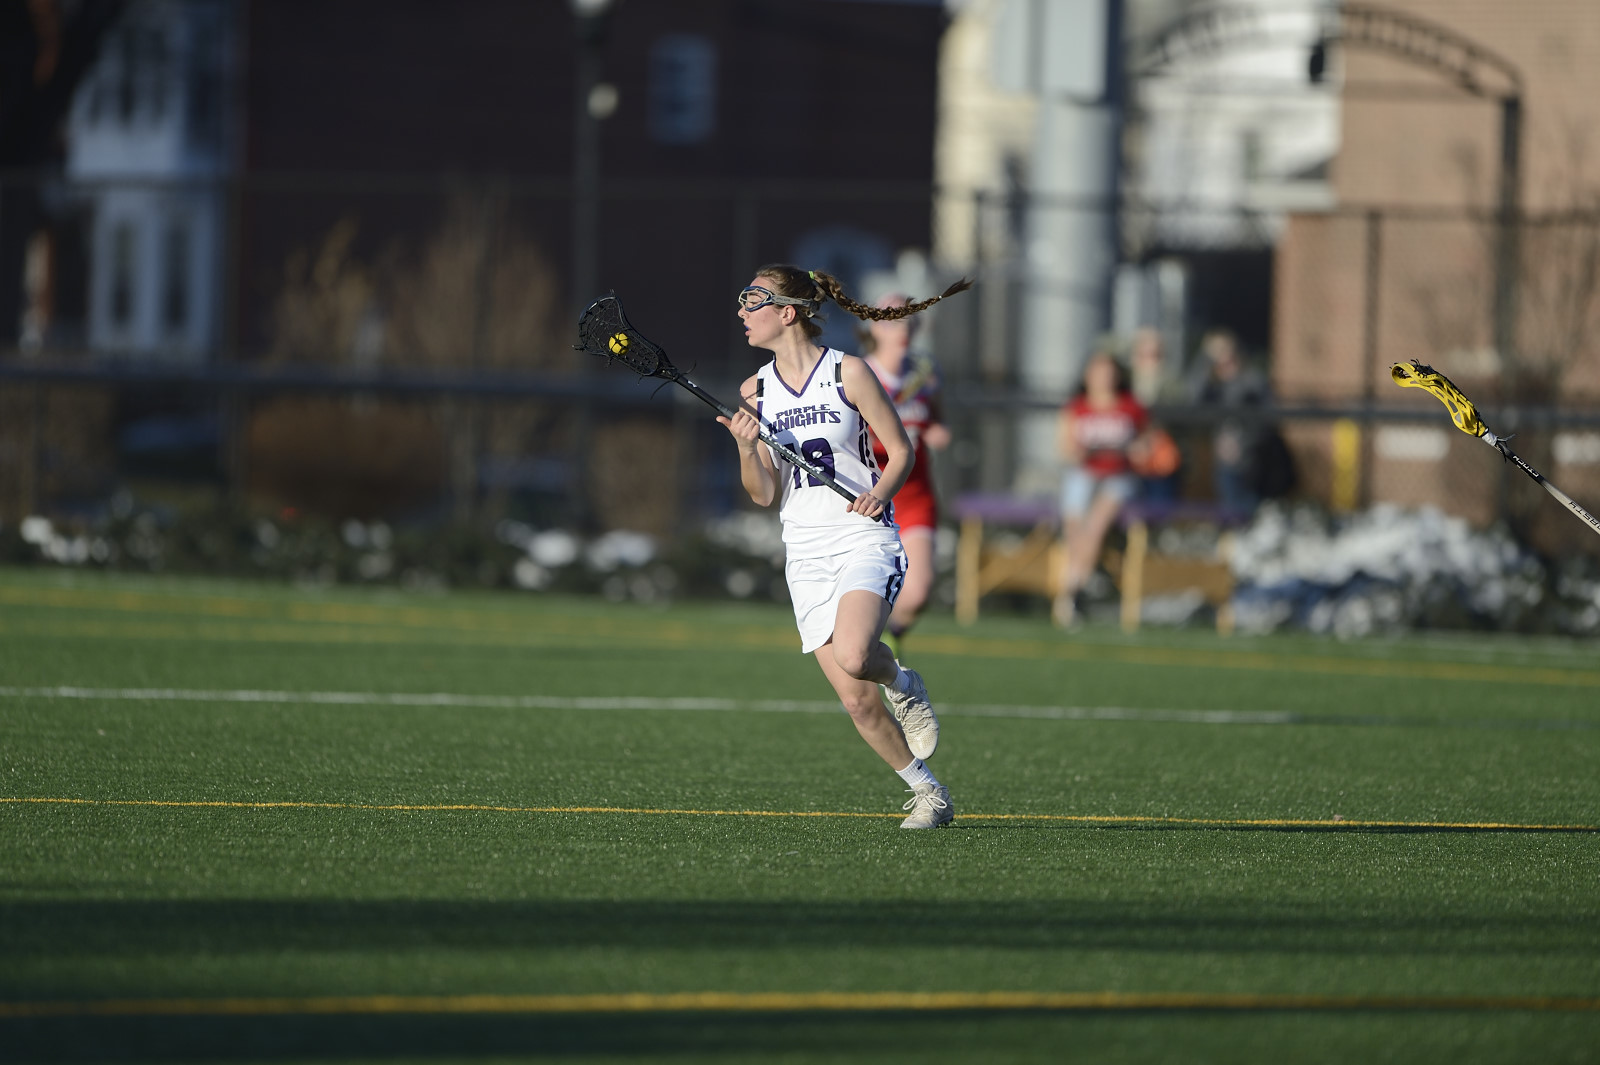 Women's Lacrosse Earns Fourth Straight Victory With 14-4 Road Win Over Post University